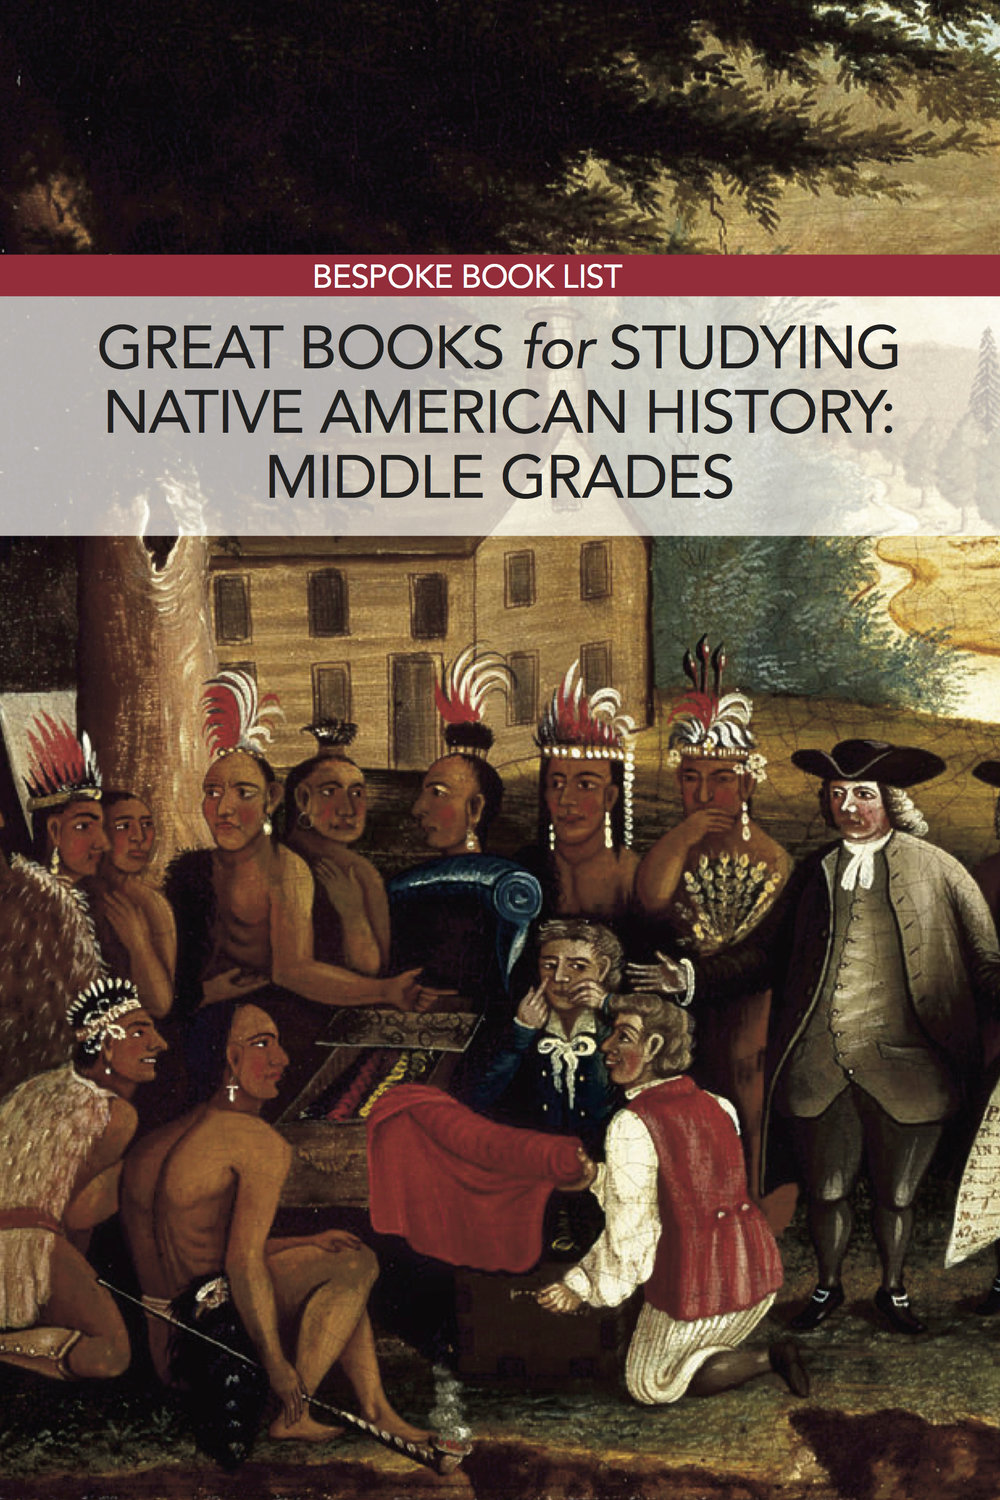 Great Books for Studying Native American History: Middle School